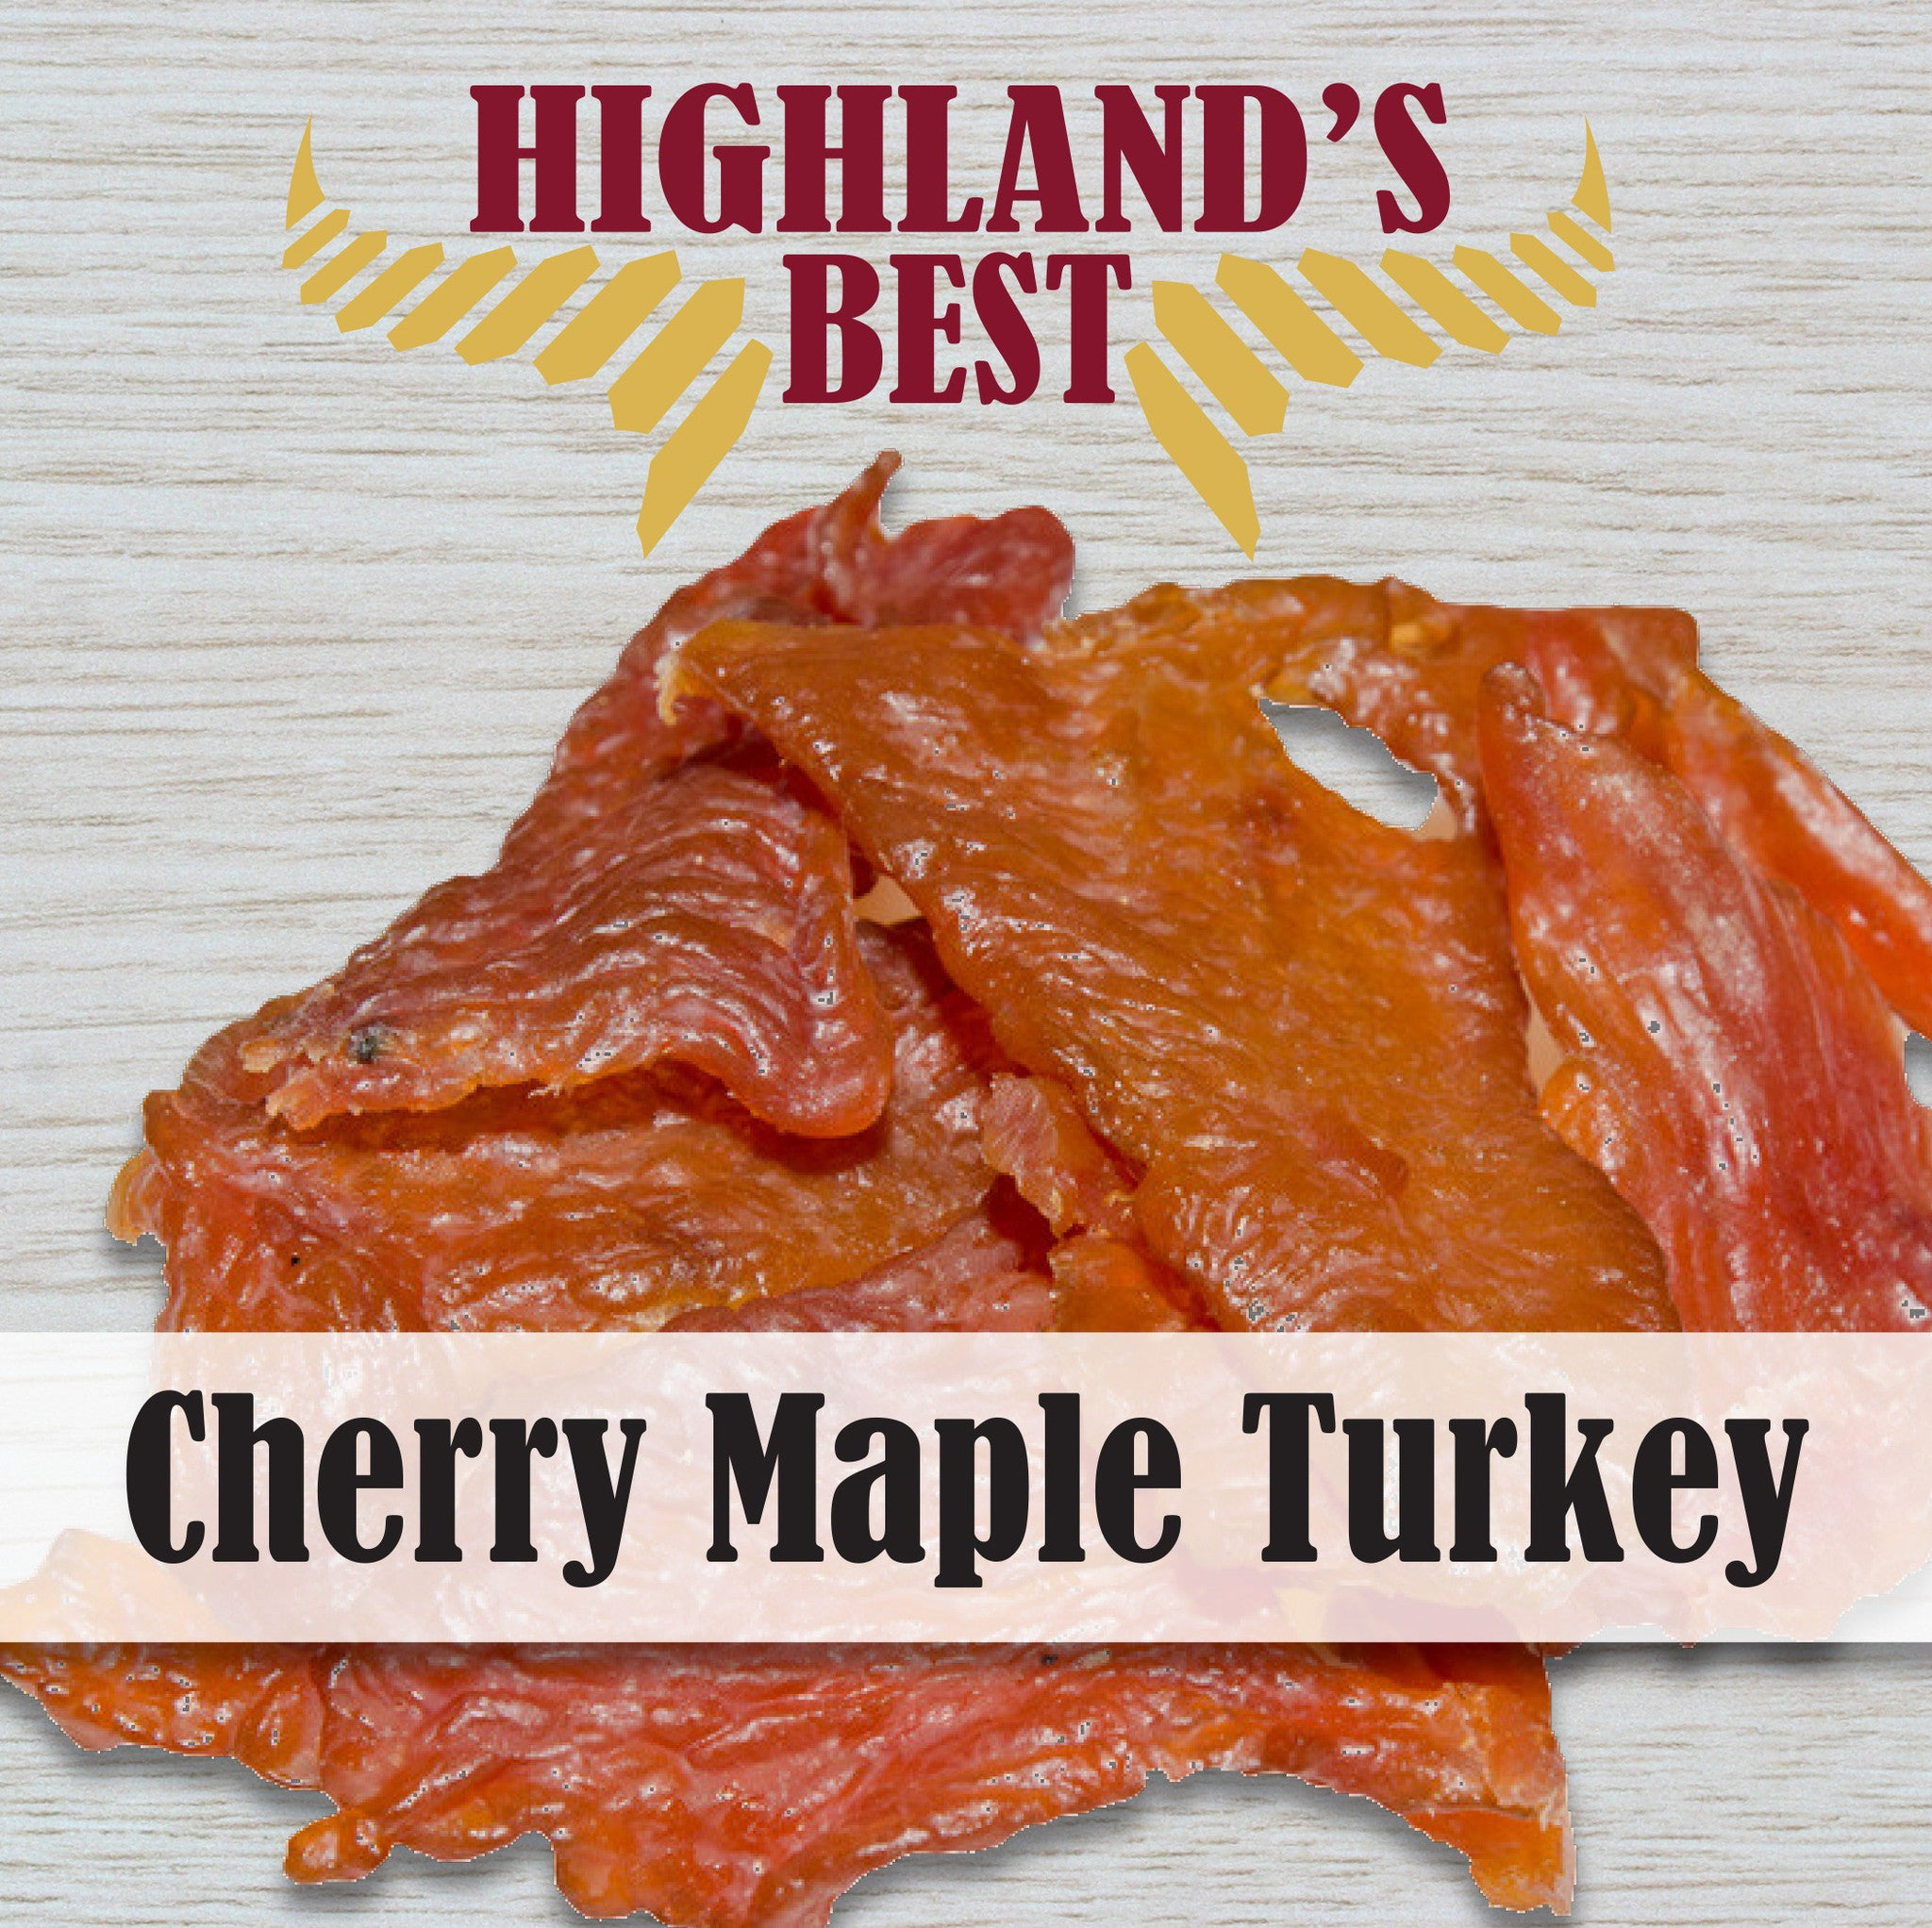 Highland's Best : Turkey Jerky Cherry Maple (4oz, 1lb, & Bulk)